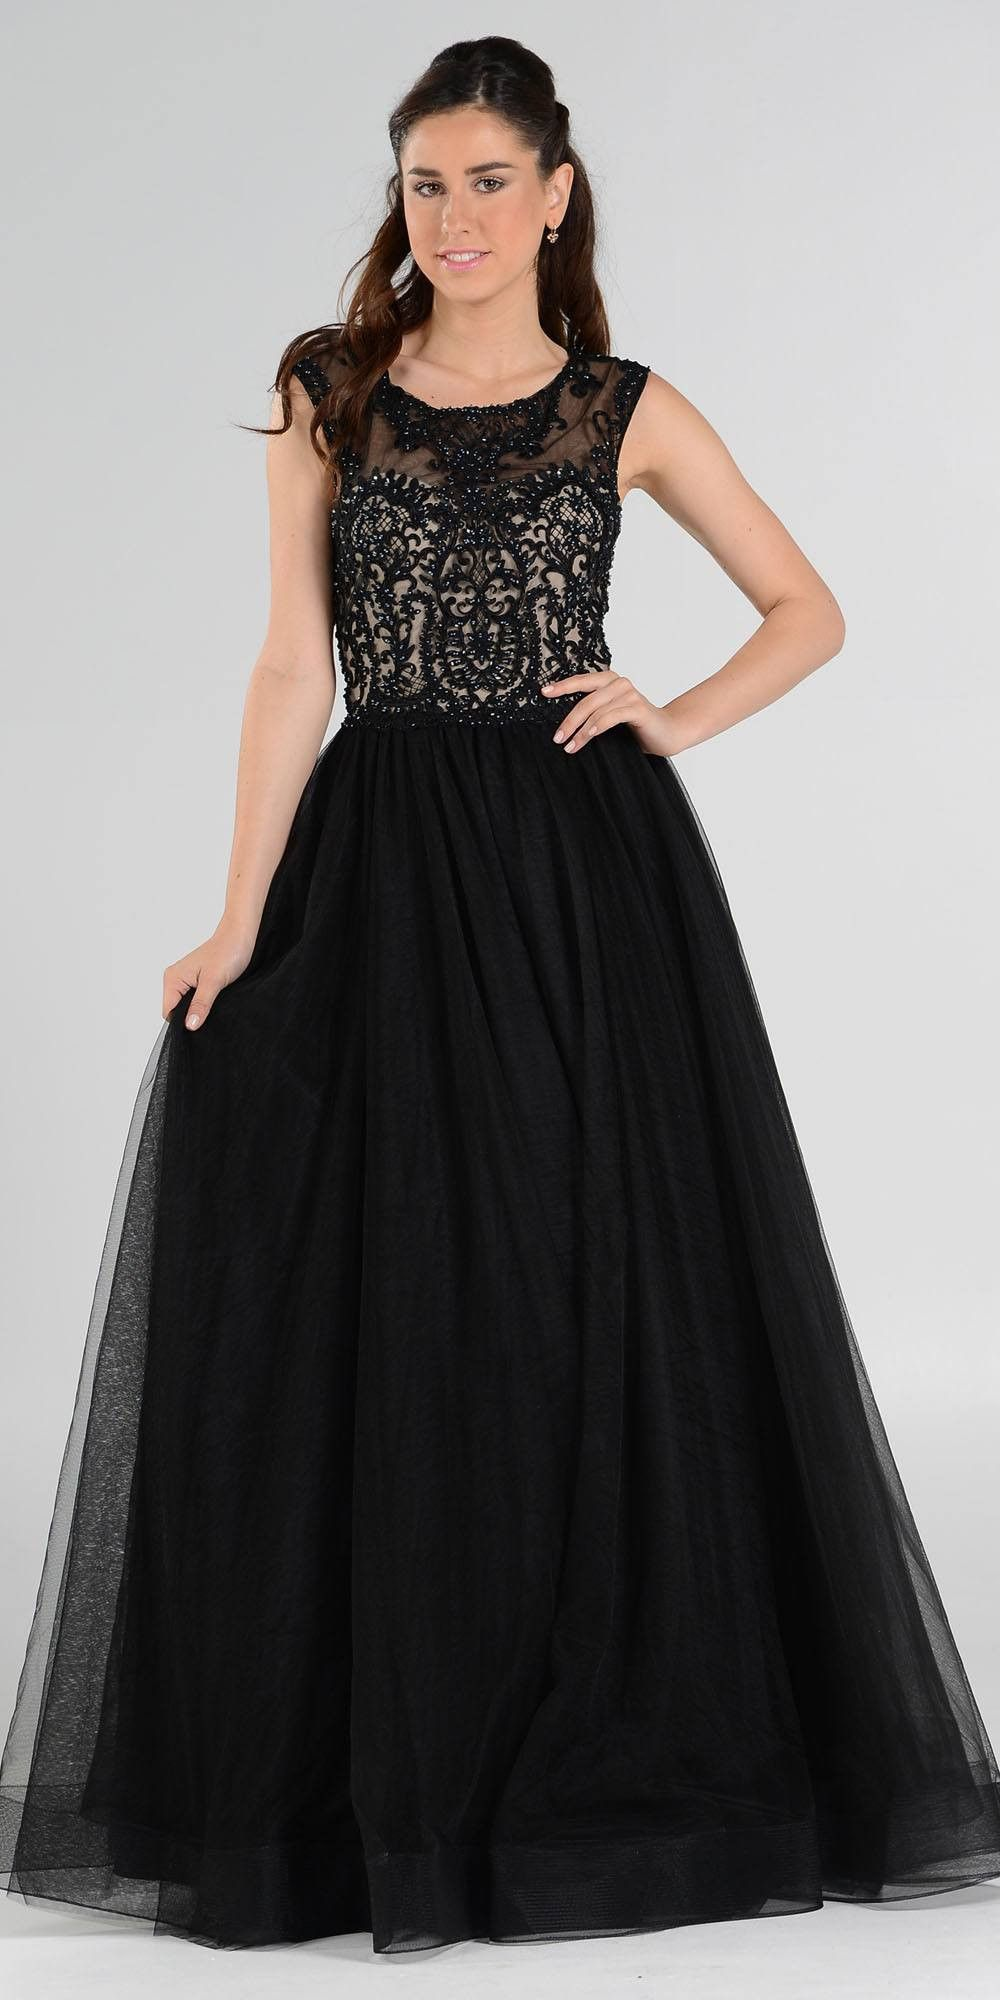 Embroidered Top Layered Mesh Skirt Sleeveless Black Ball Gown ...